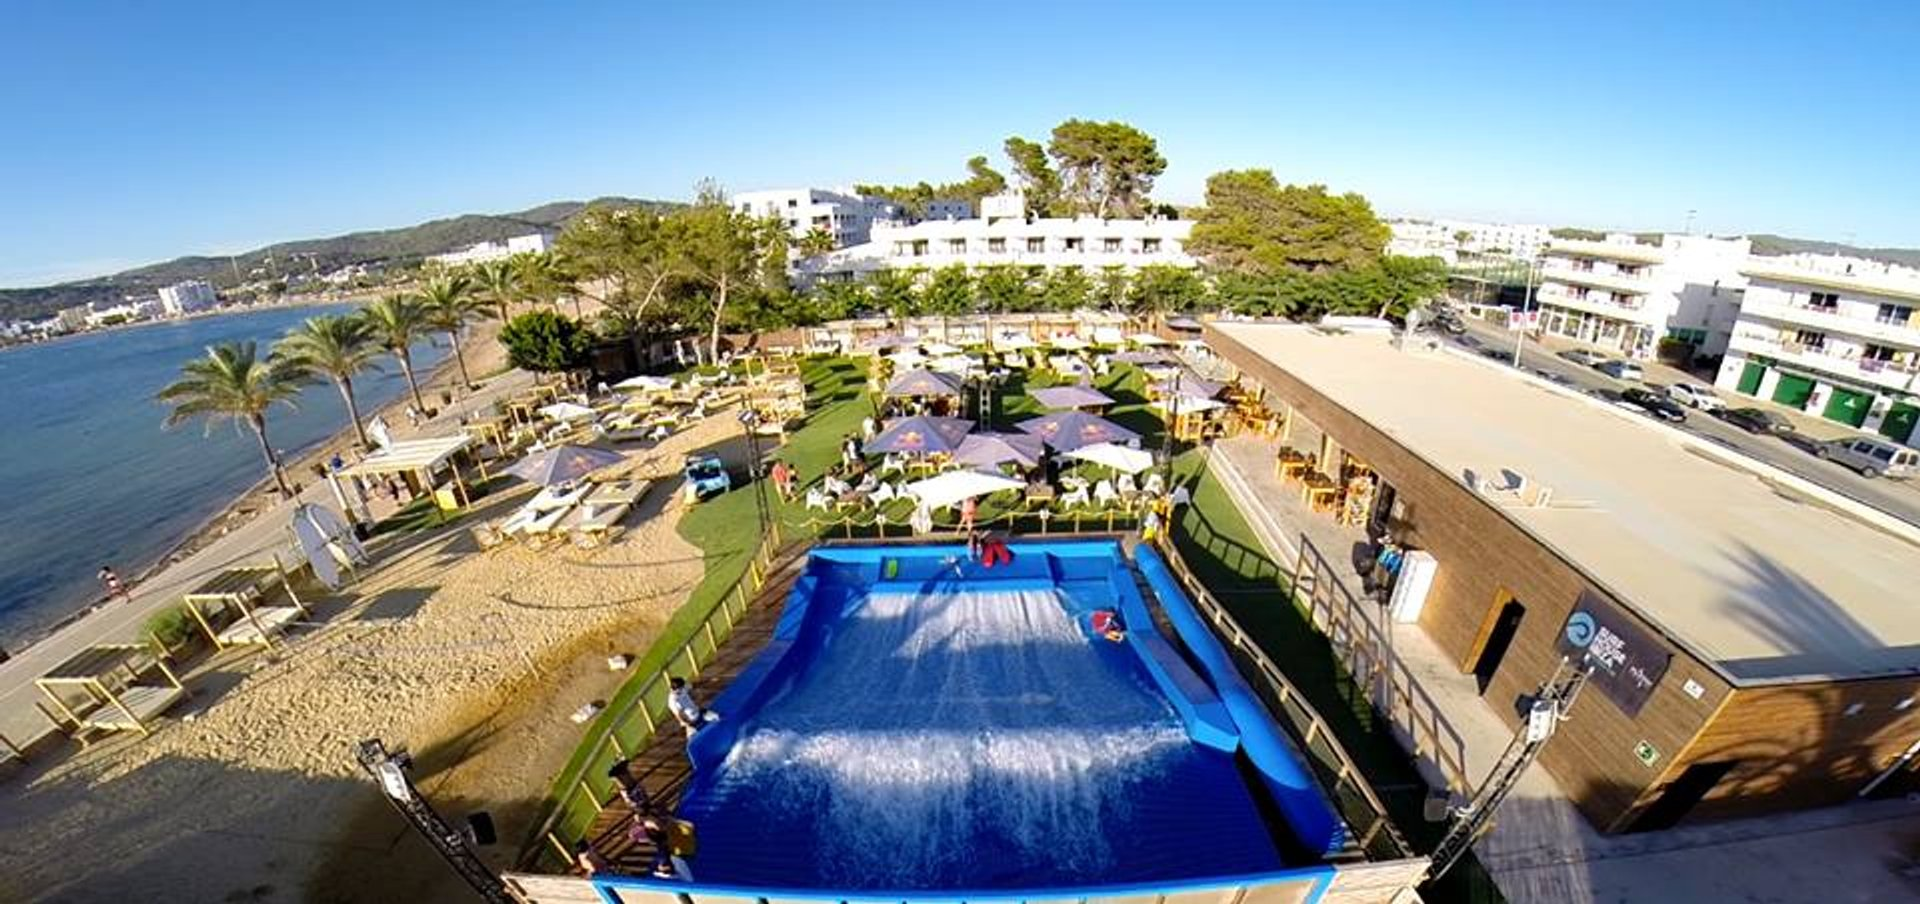 Surf Lounge Ibiza in Ibiza - Best Season 2020